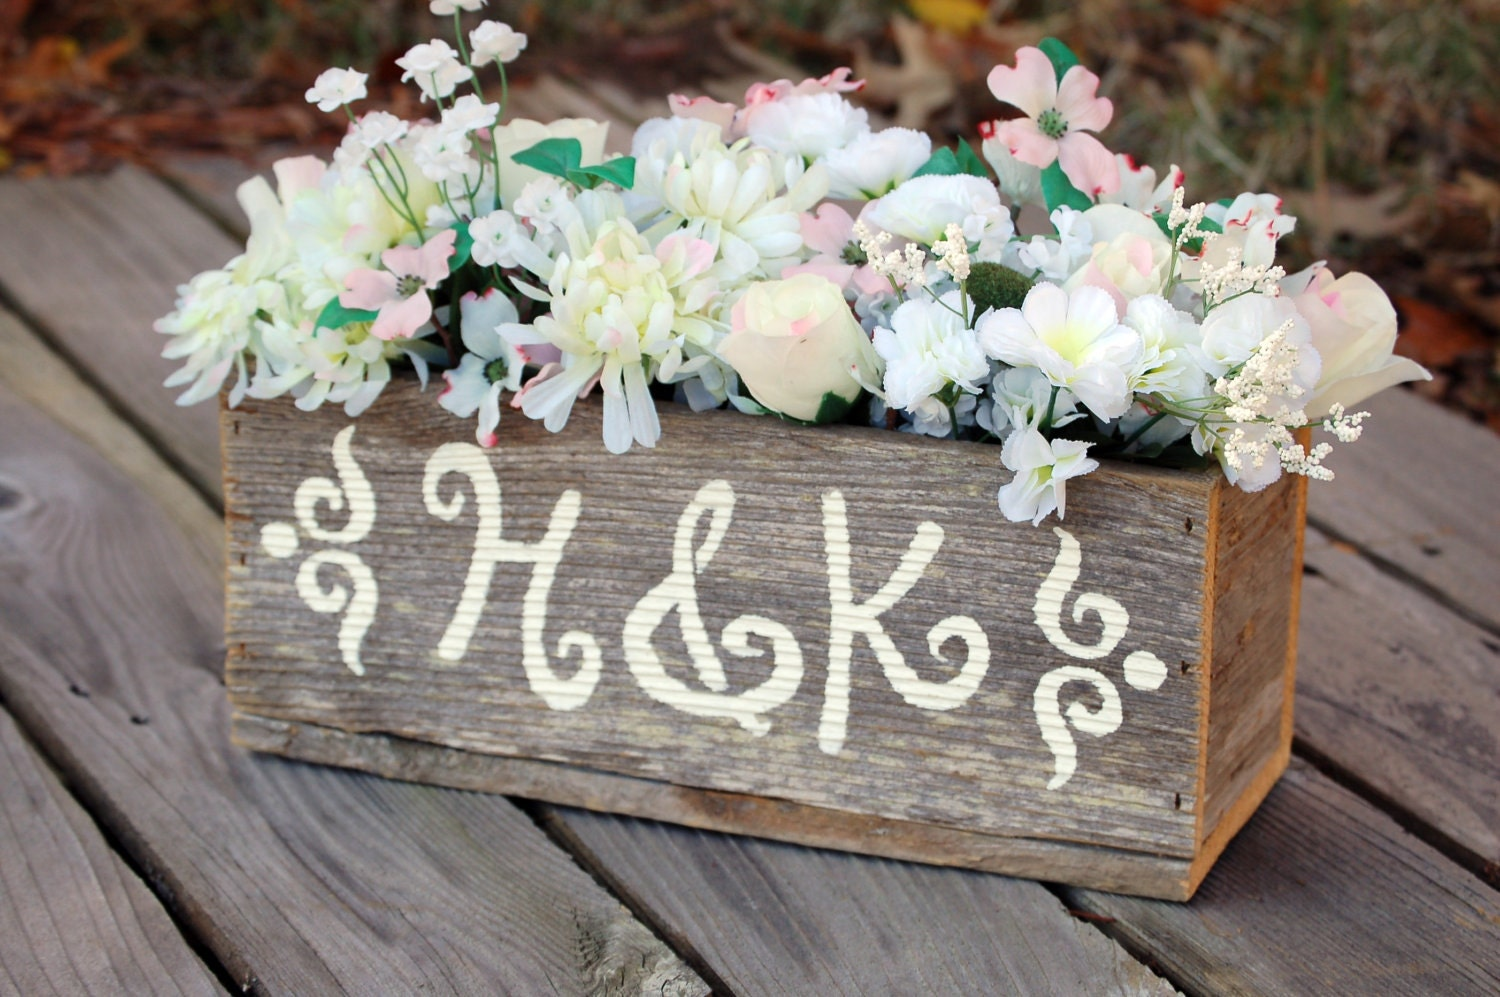 Personalized wood centerpiece flower vase flower by for Wedding mailbox decorating ideas